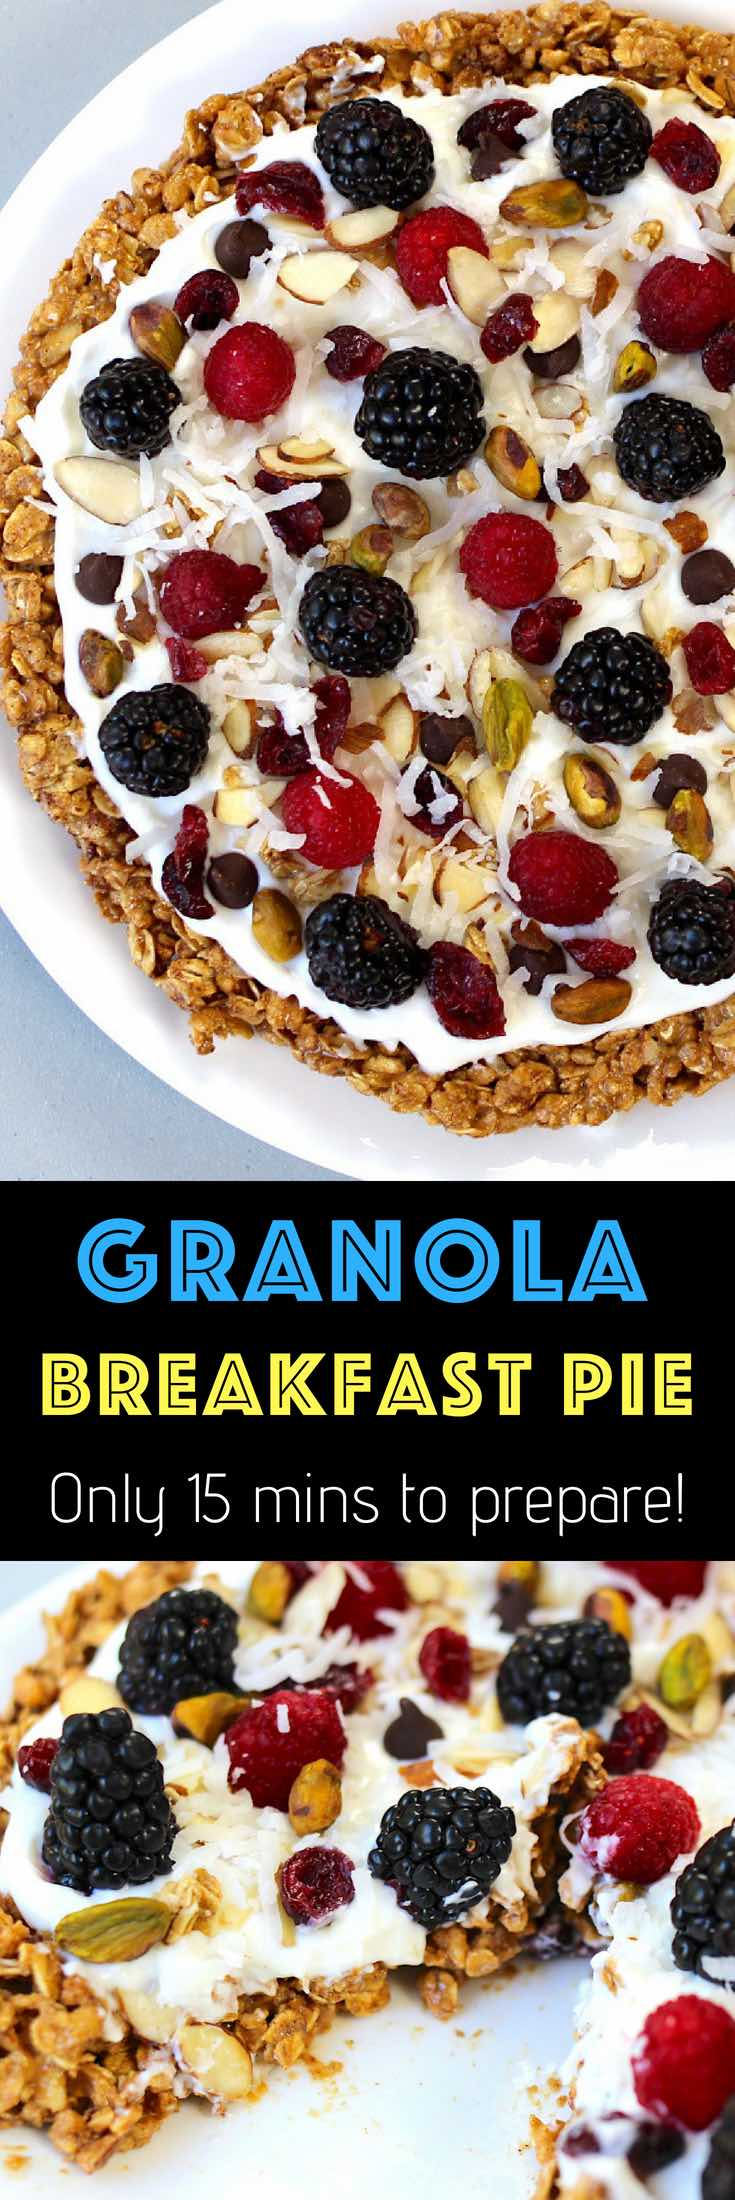 Healthy Breakfast Pie that's easy to make with a few simple ingredients: granola, peanut butter, almonds, cinnamon, yogurt, berries and nuts. A great vegetarian breakfast or brunch idea.